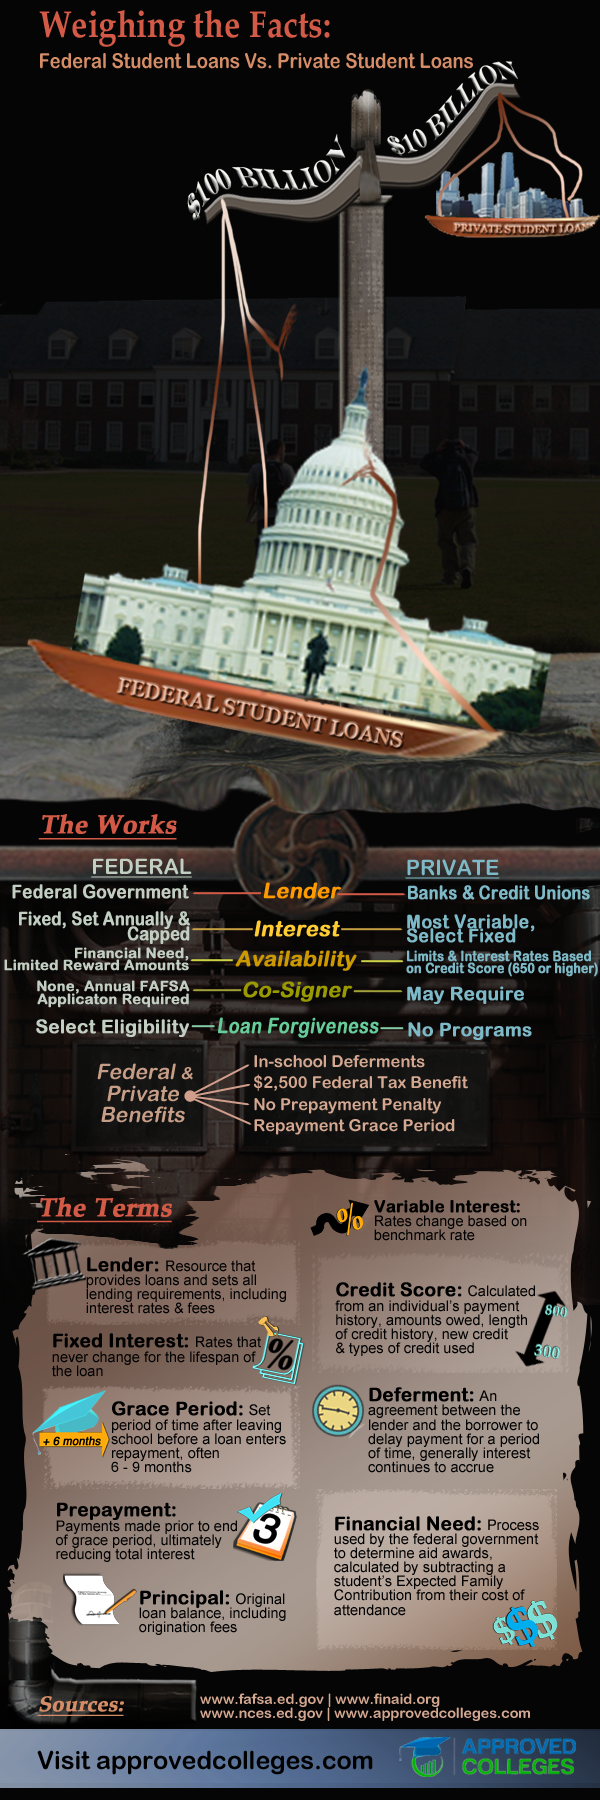 federal-vs-private-student-loans-infographic